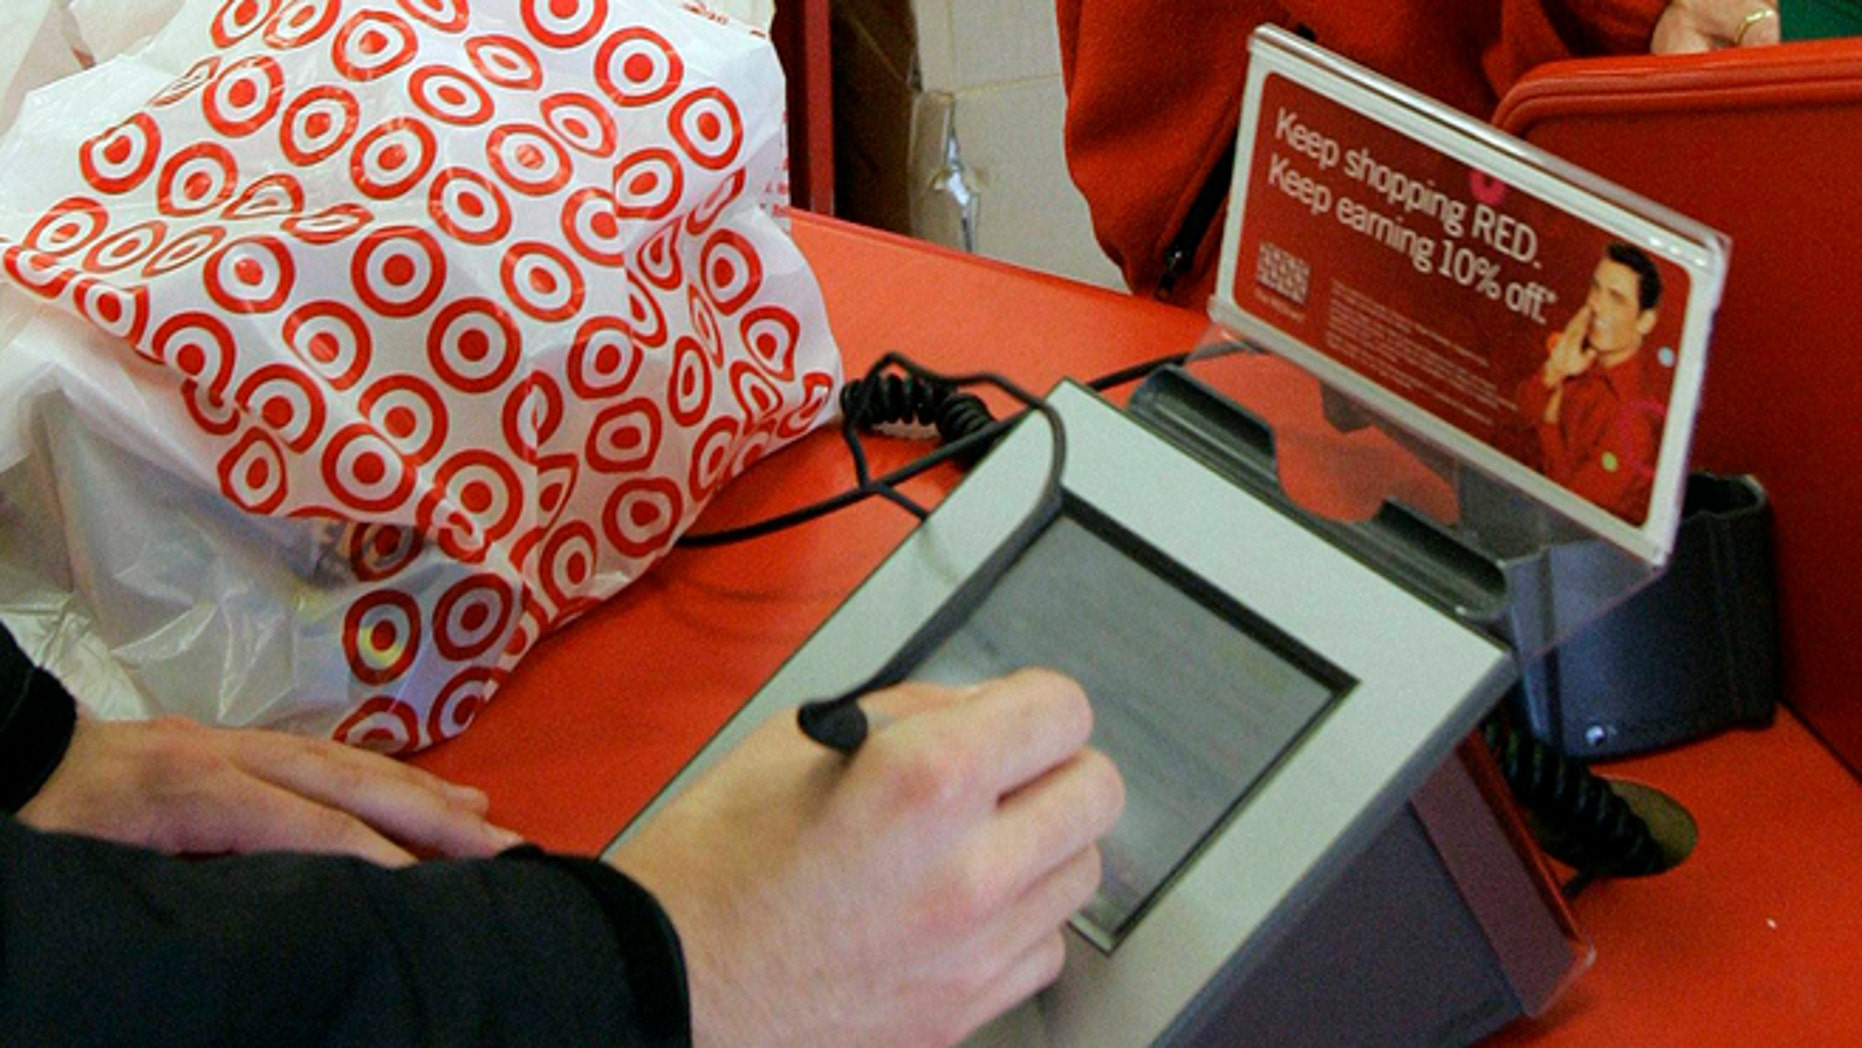 The U.S. is the juiciest target for hackers hunting credit card information. And experts say incidents like the recent data theft at Target's stores will get worse before they get better.